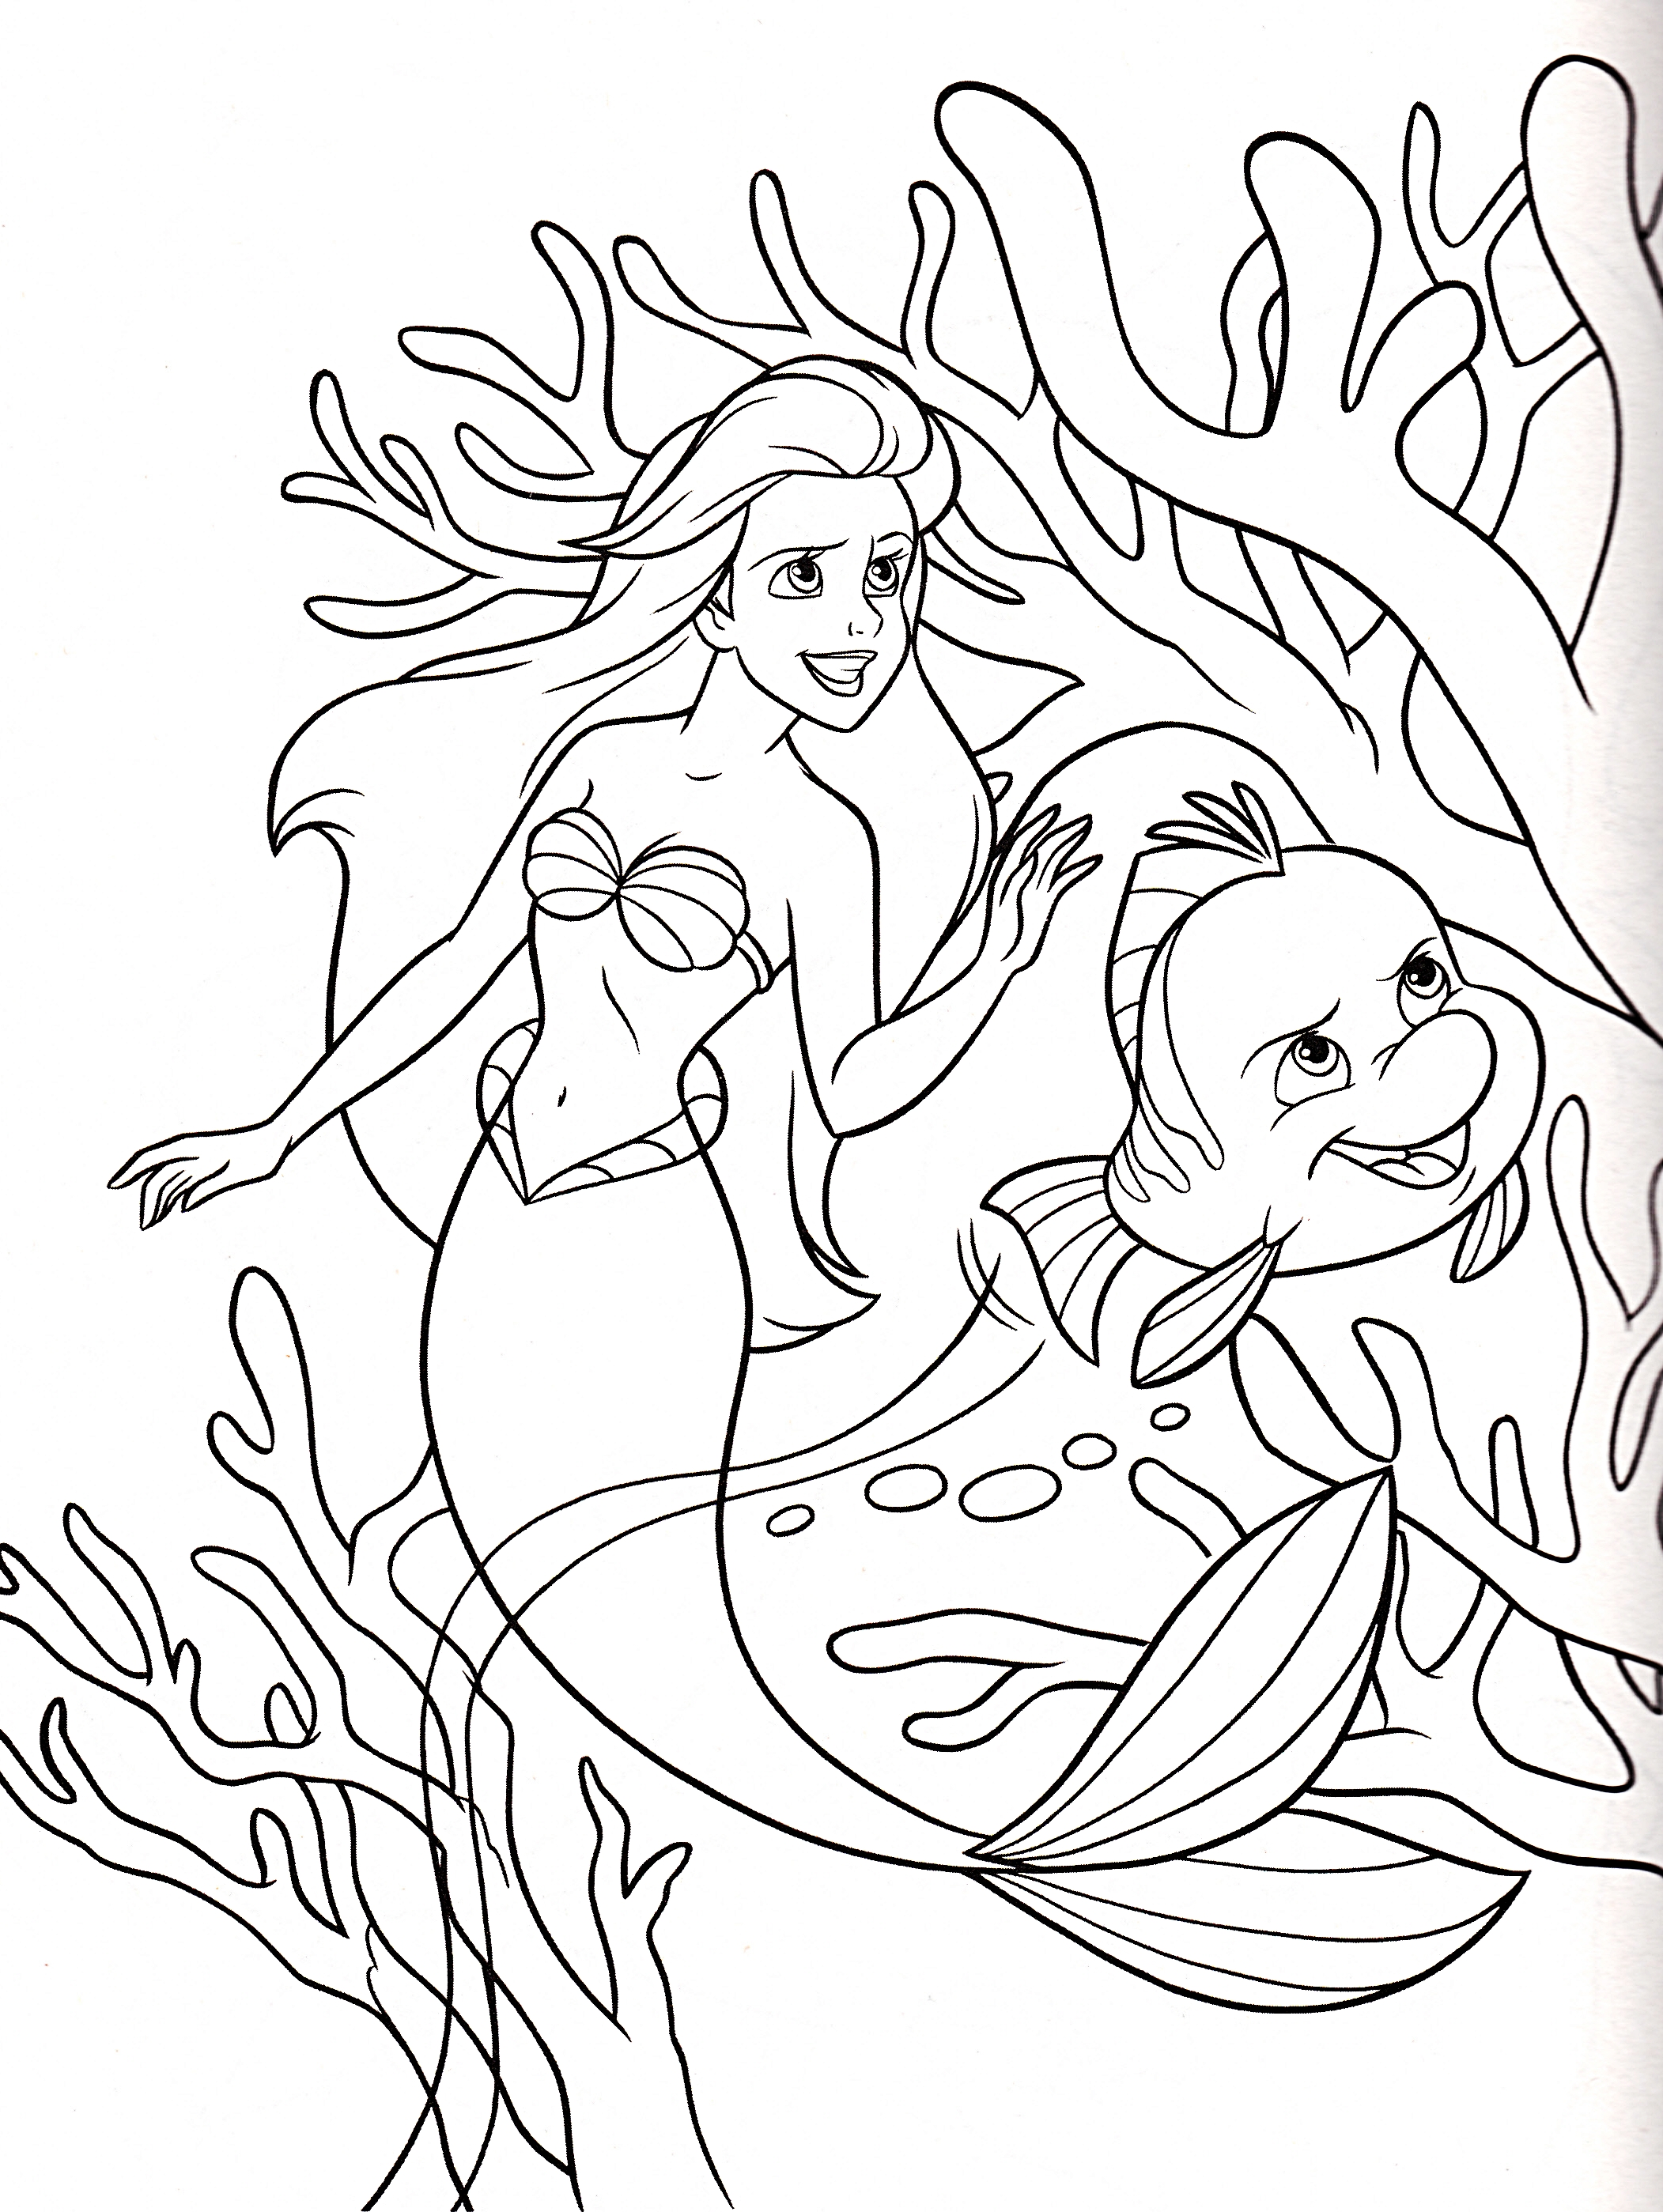 Disney Coloring Pages (25) - Coloring Kids